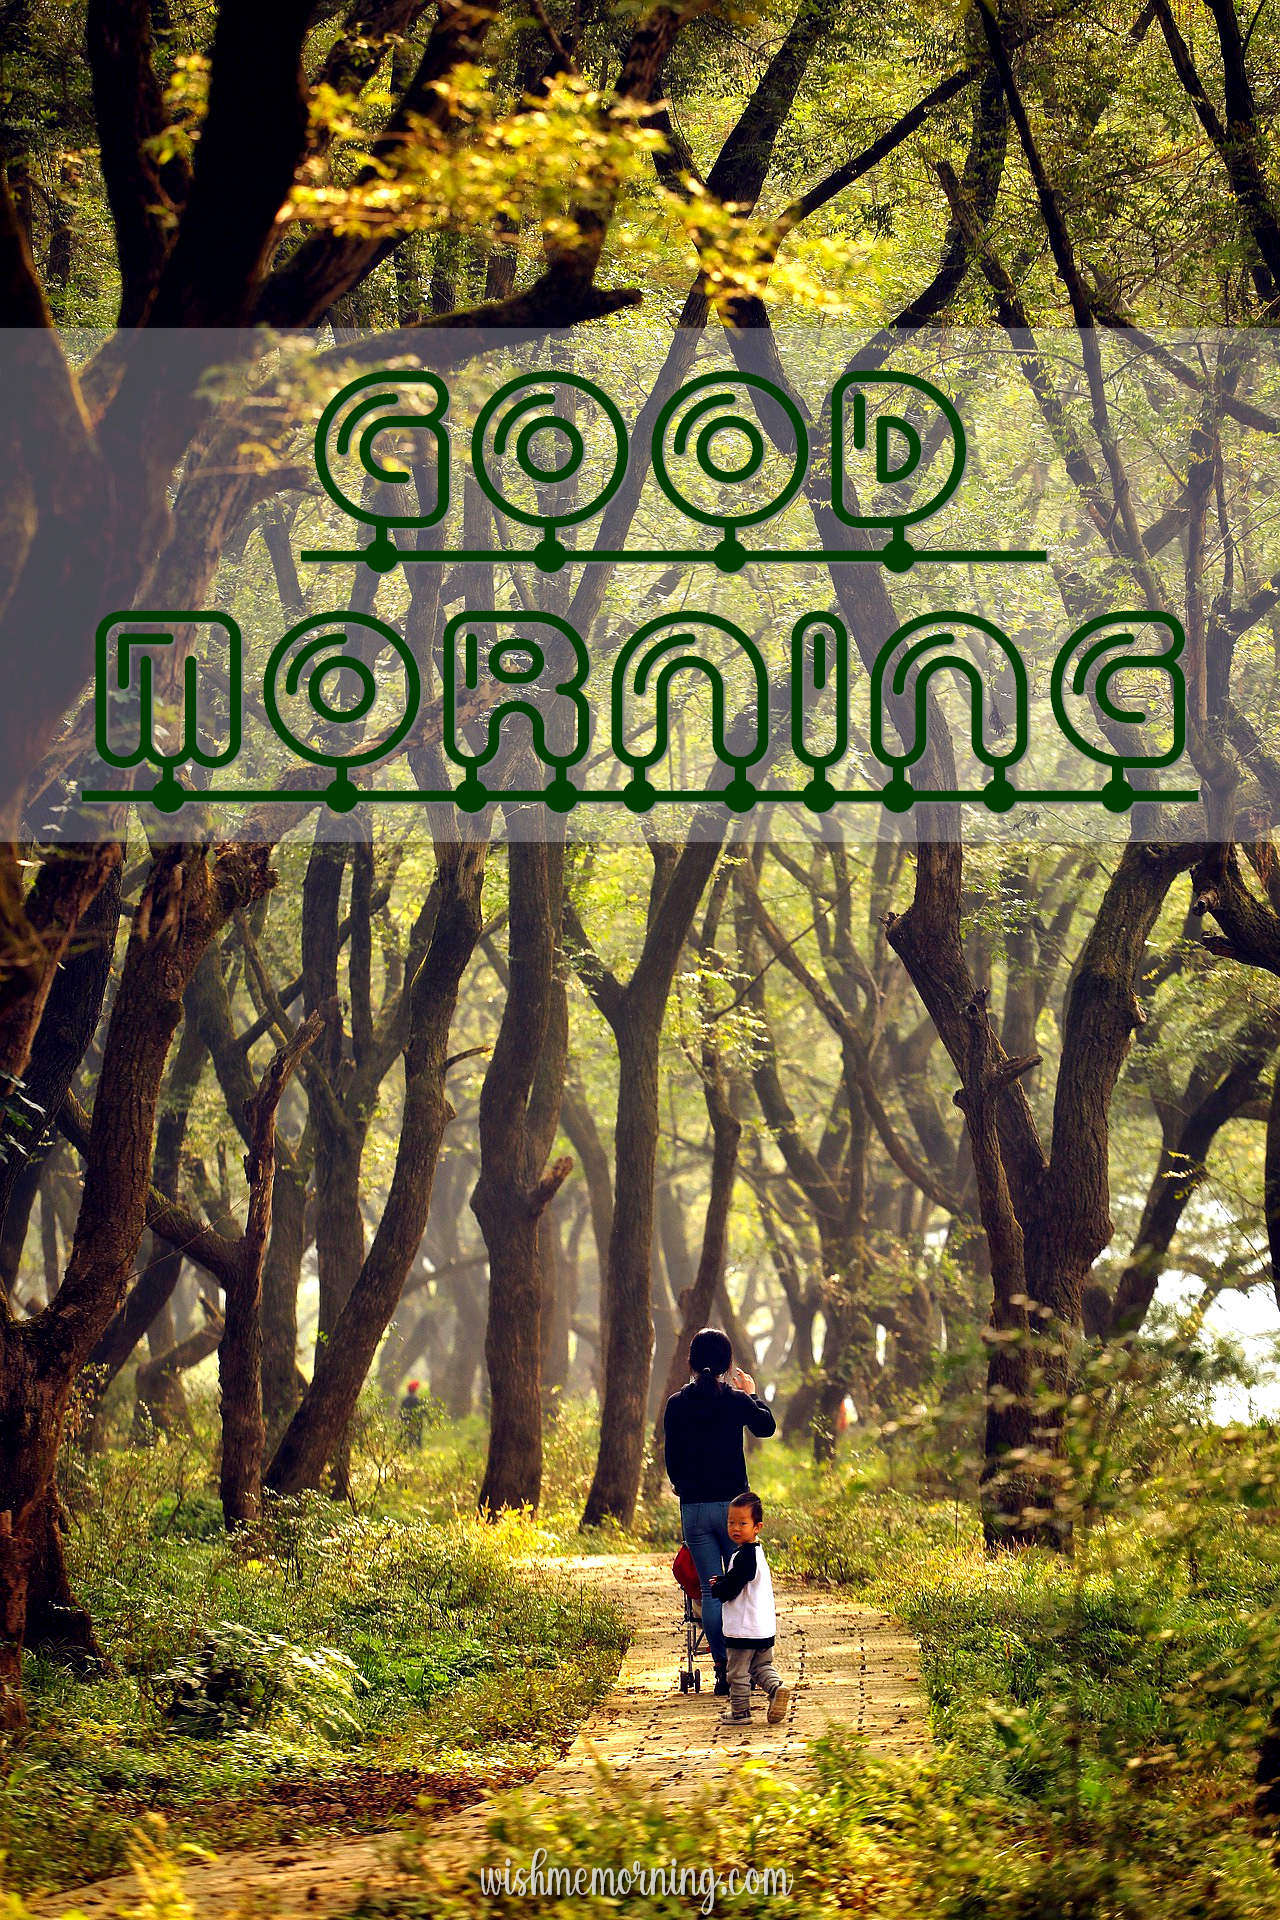 Beautiful Trees Woods Nature Images Wishes wishmemorning.com 7